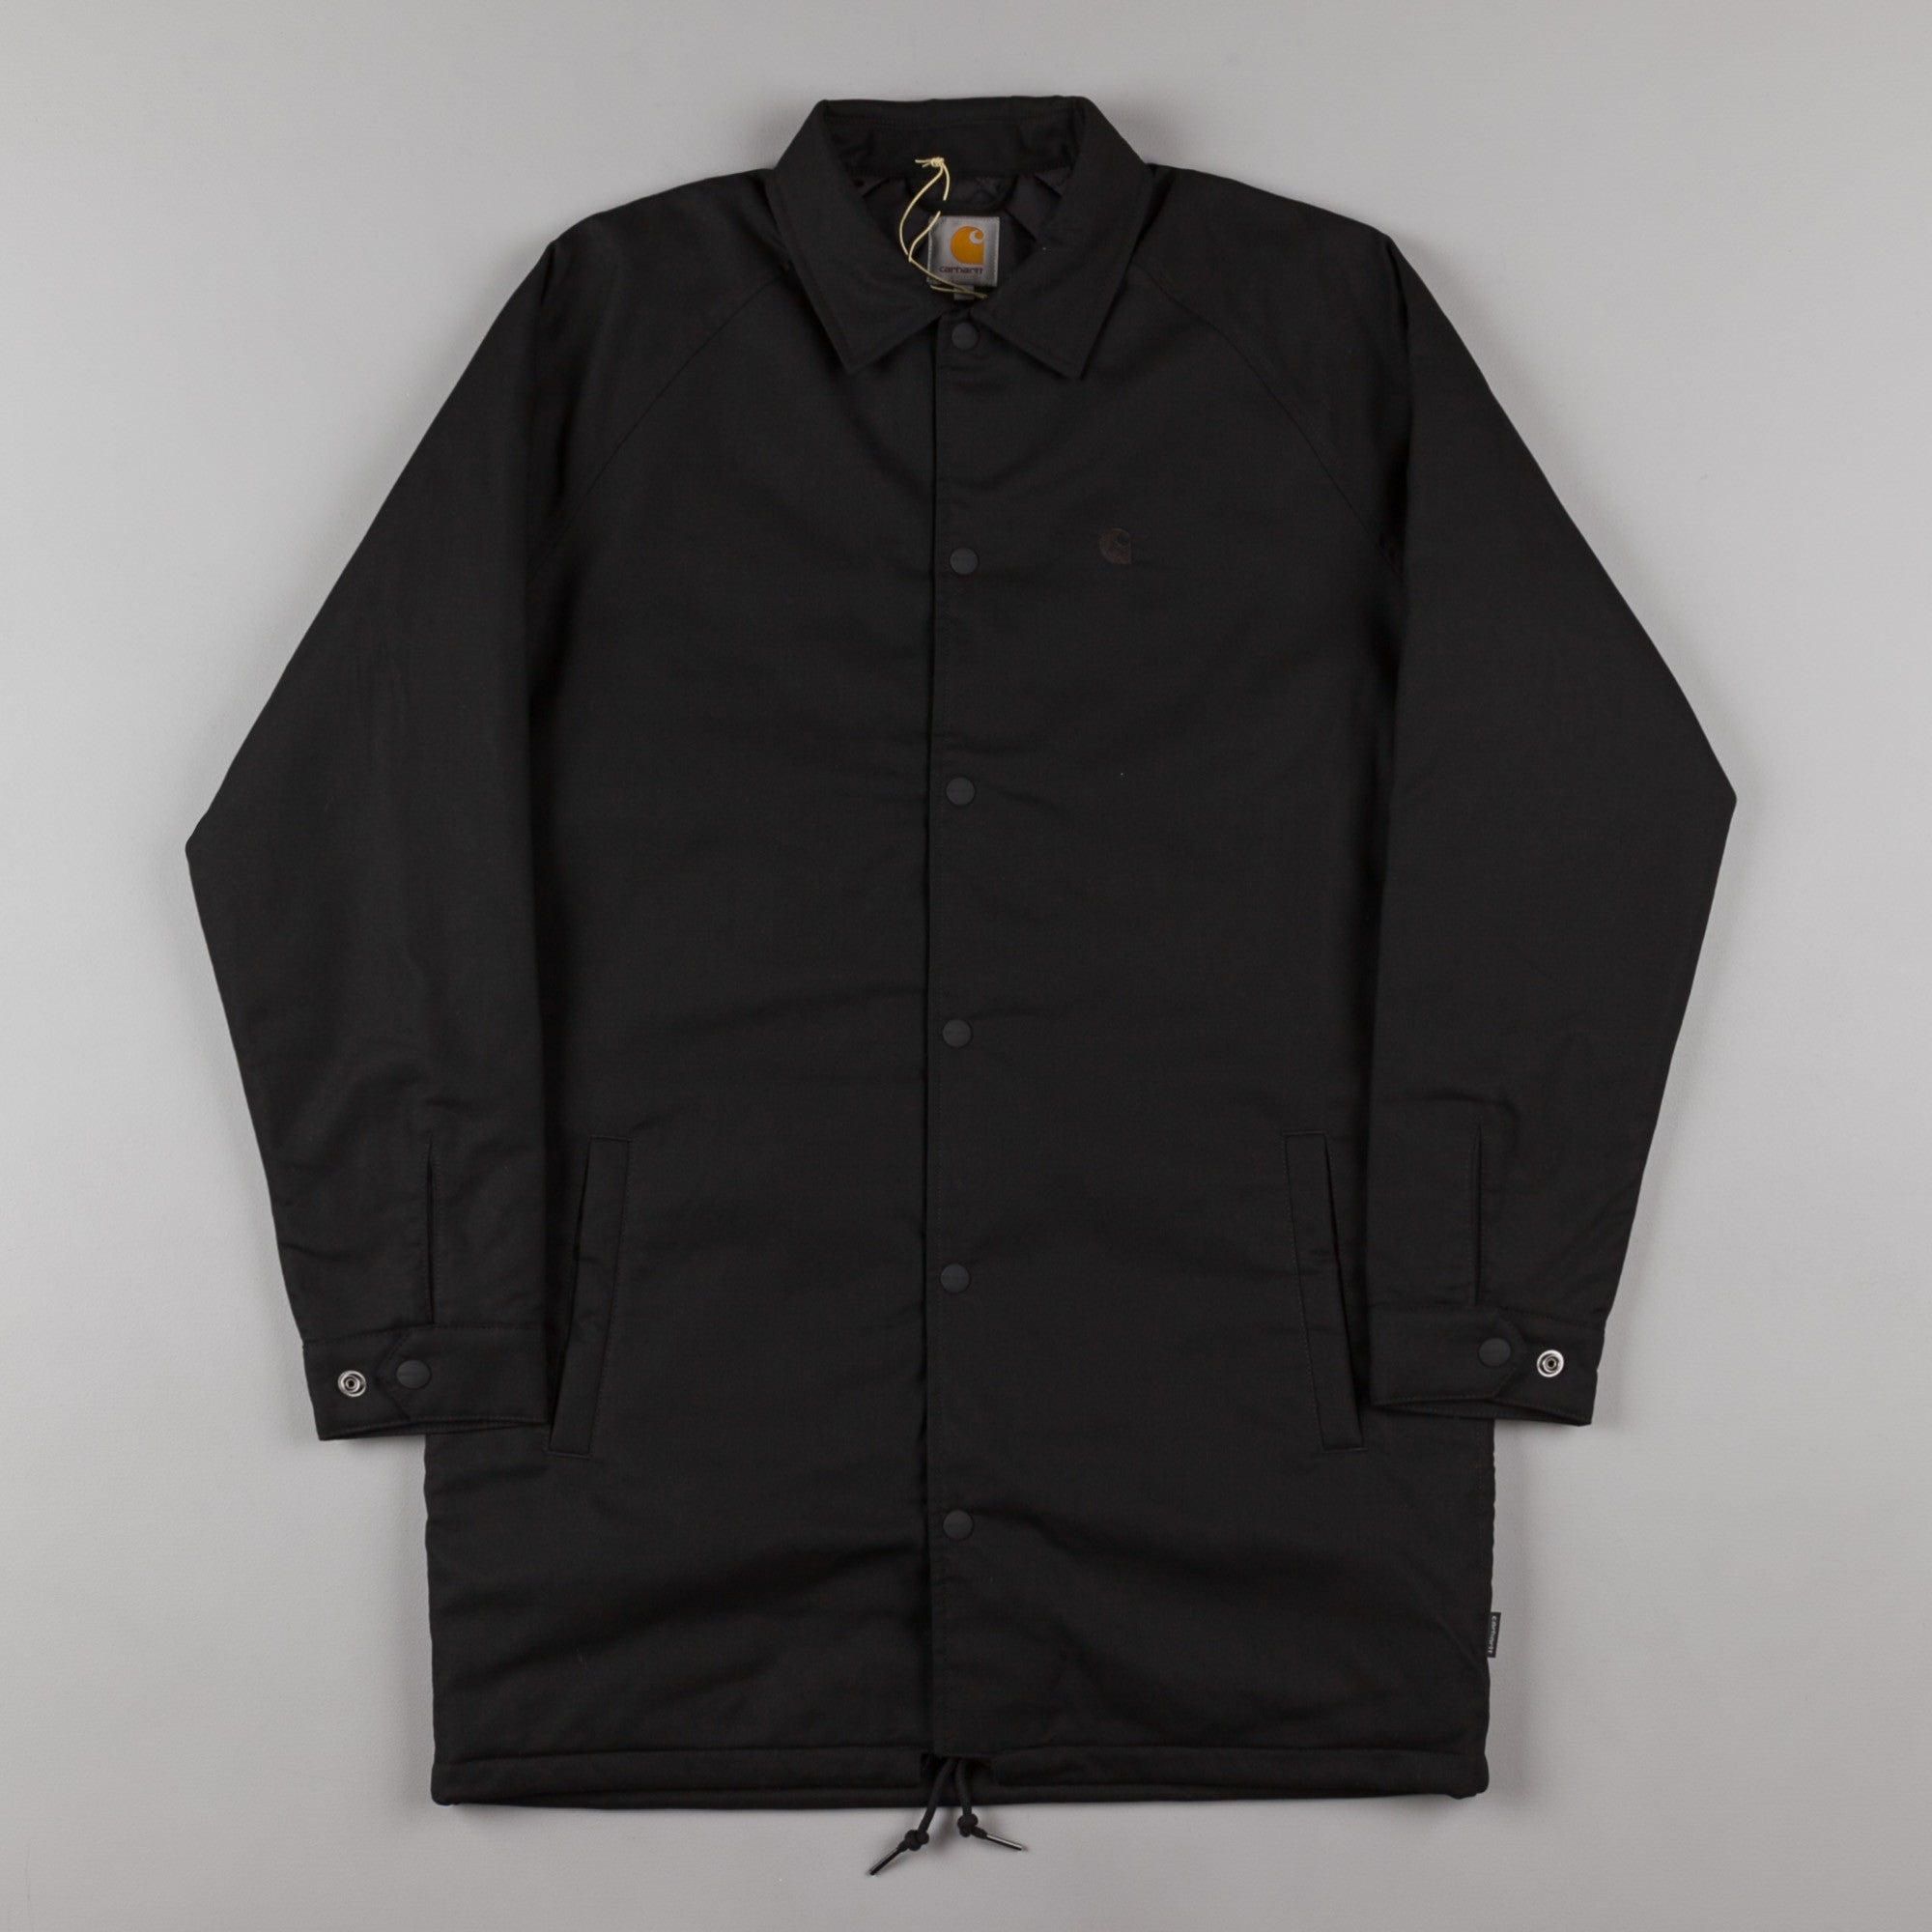 Carhartt Sanford Jacket - Black